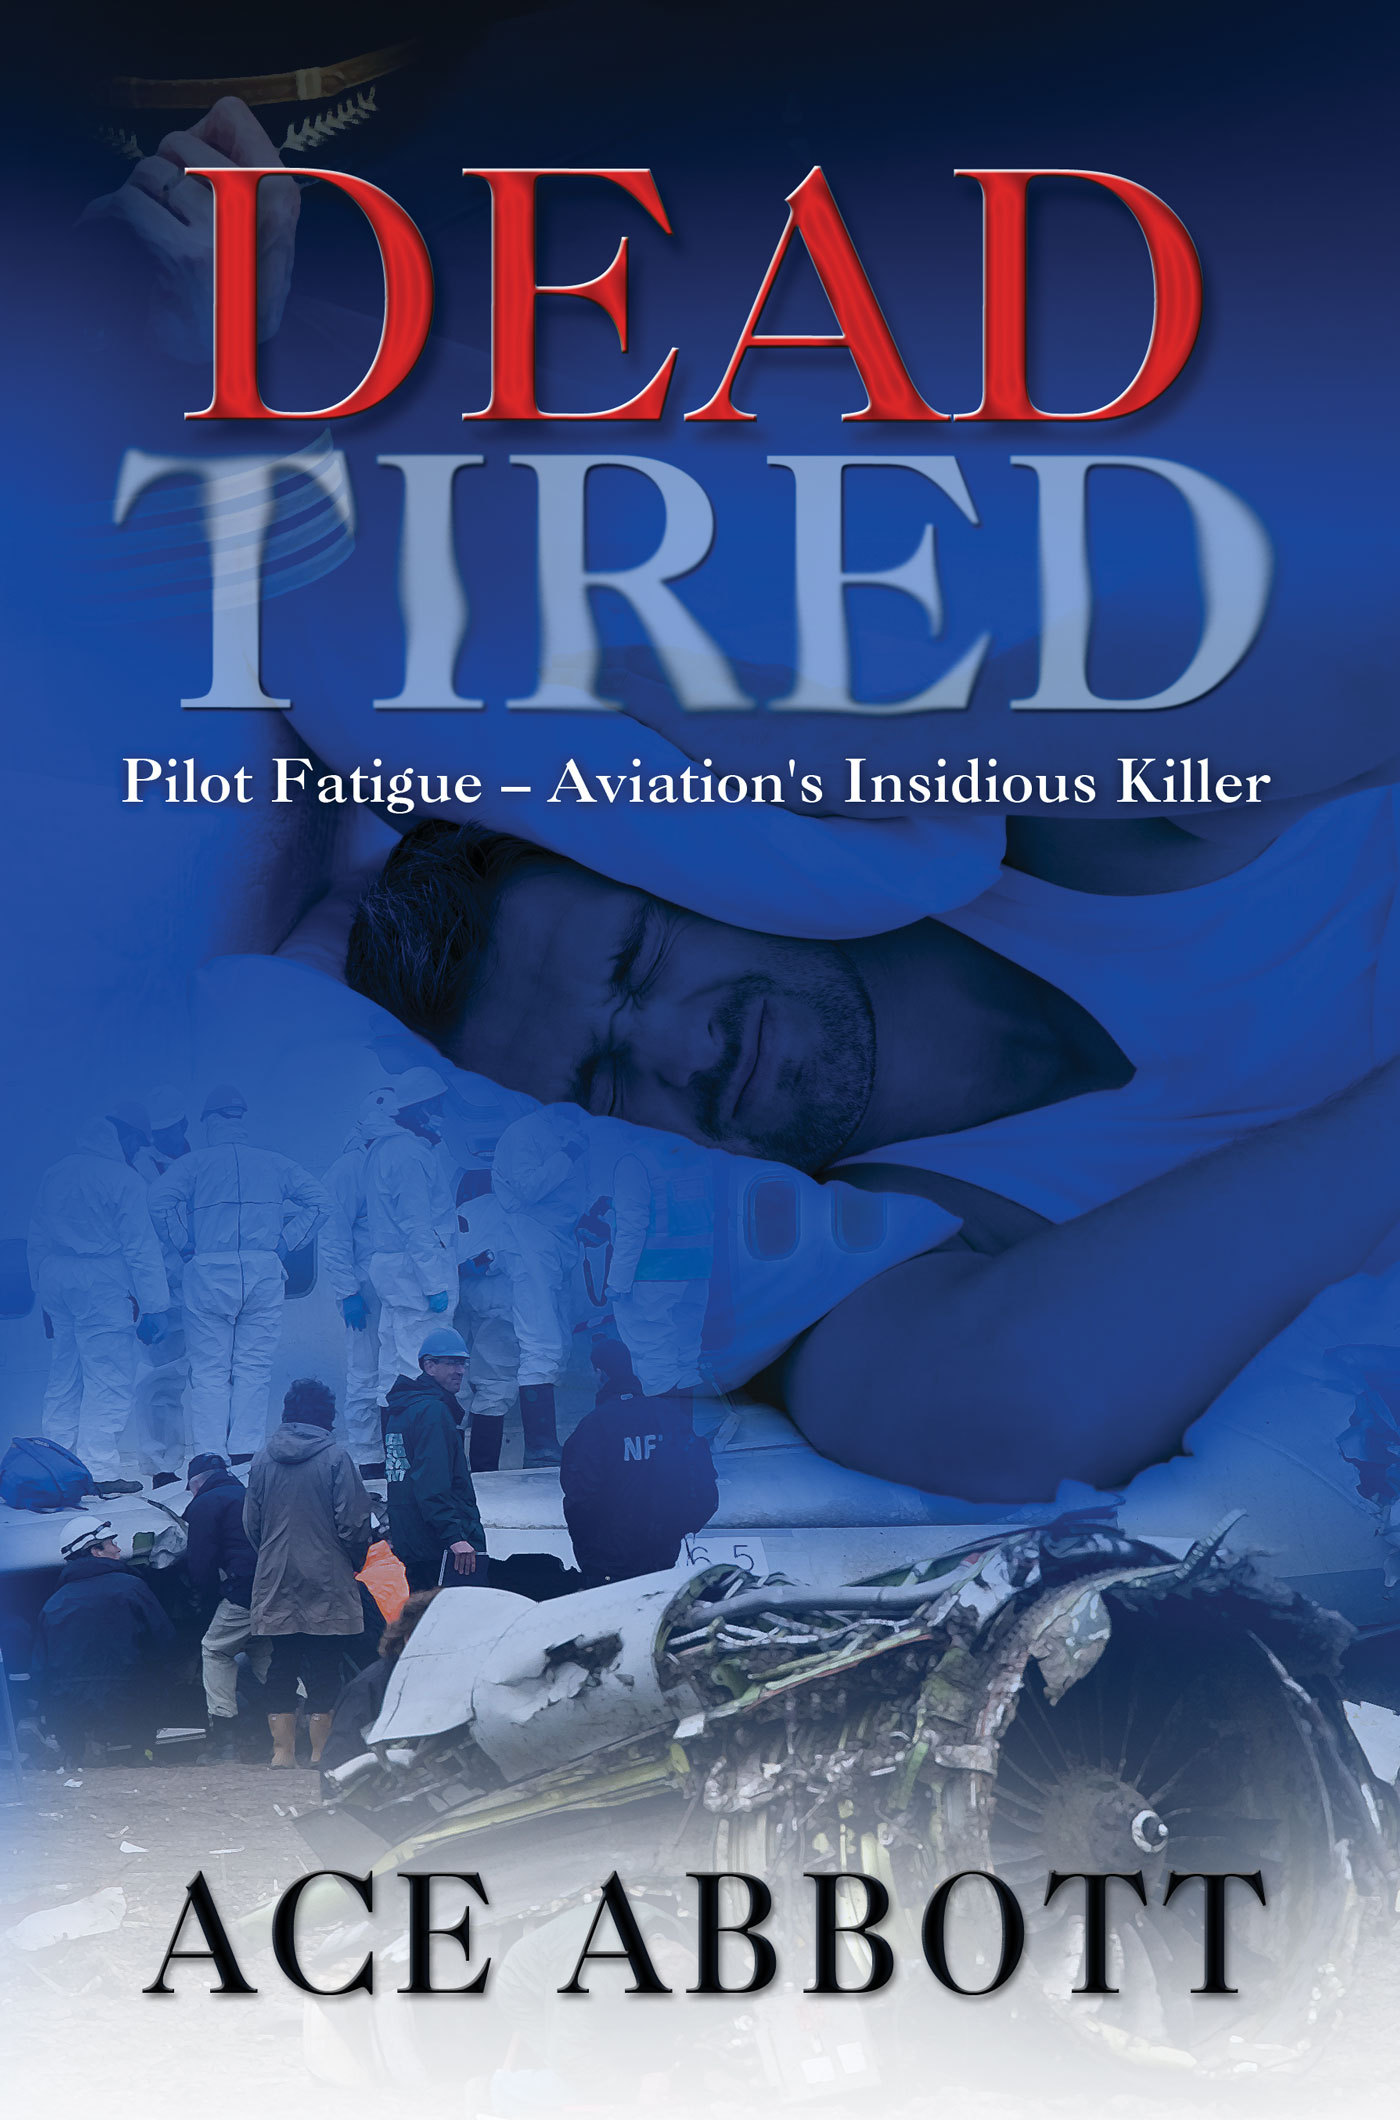 DEAD TIRED – Pilot Fatigue – Aviation's Insidious Killer